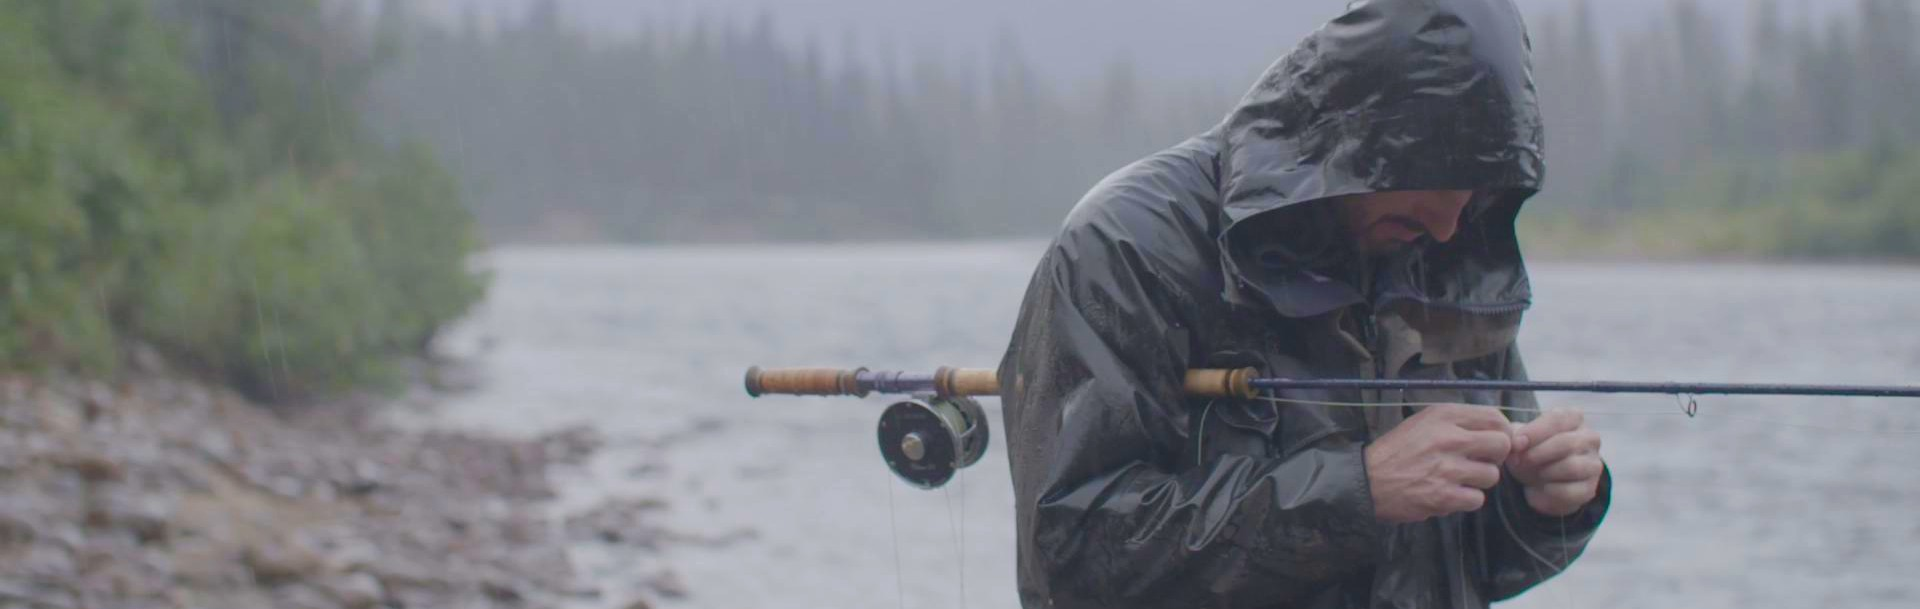 A man in the rain tying a fly to his rod